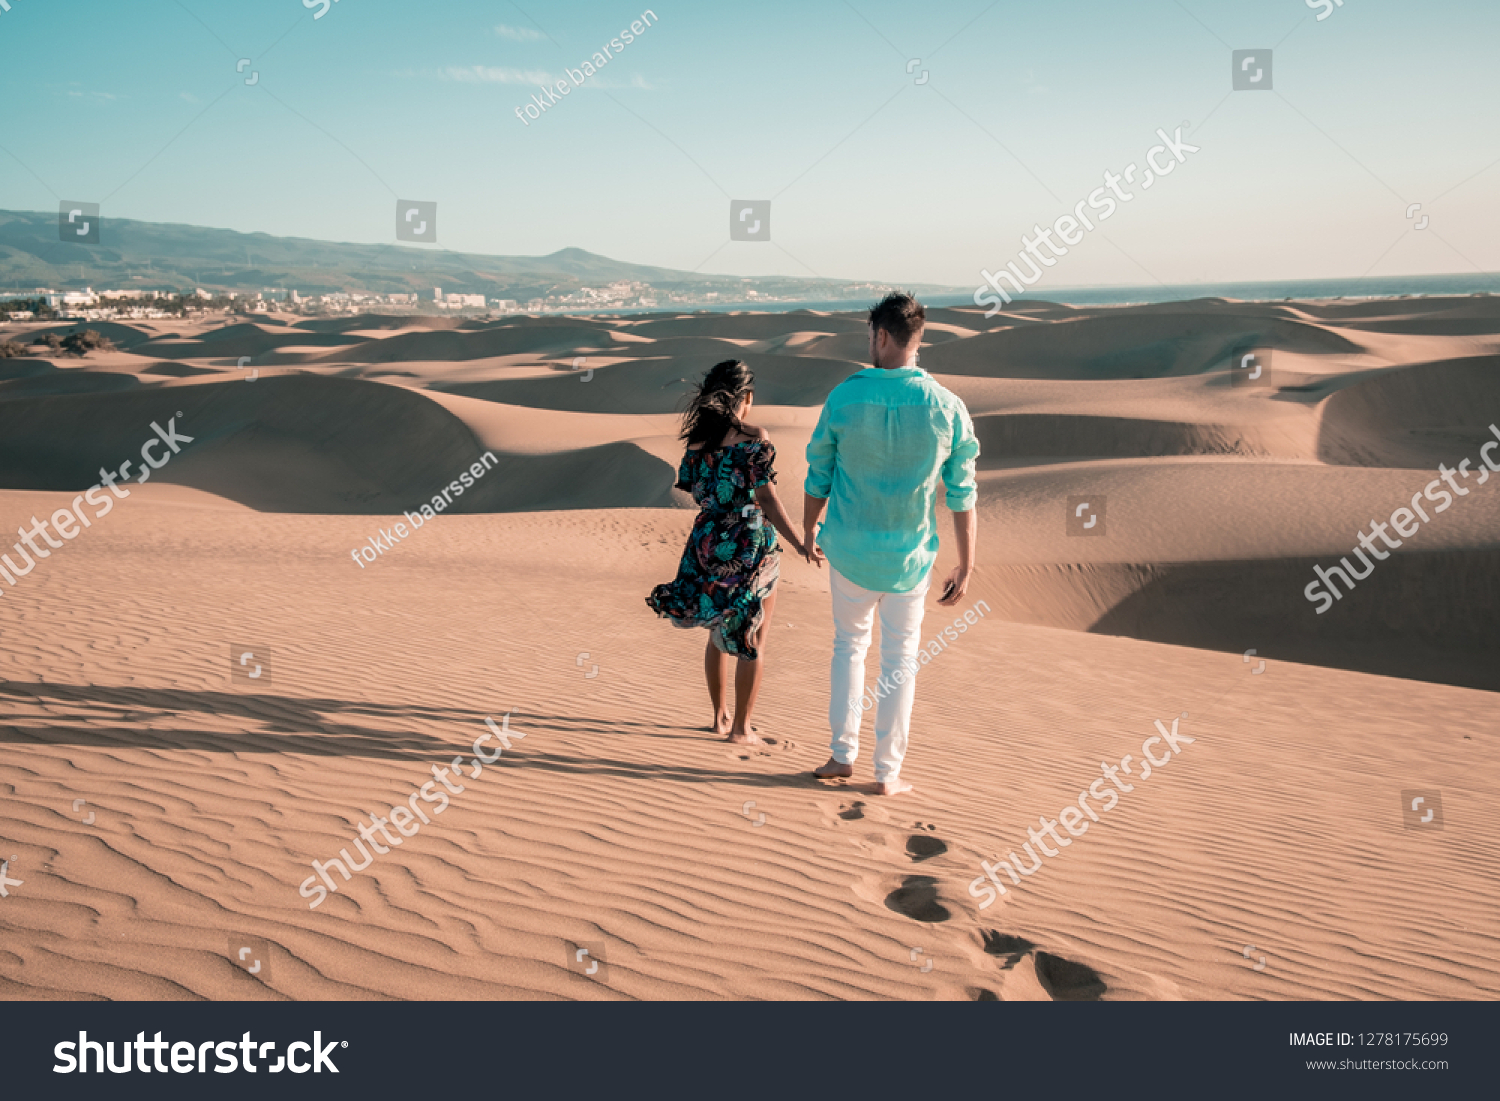 couple walking at the beach of Maspalomas Gran Canaria Spain, men and woman at the sand dunes desert of Maspalomas #1278175699